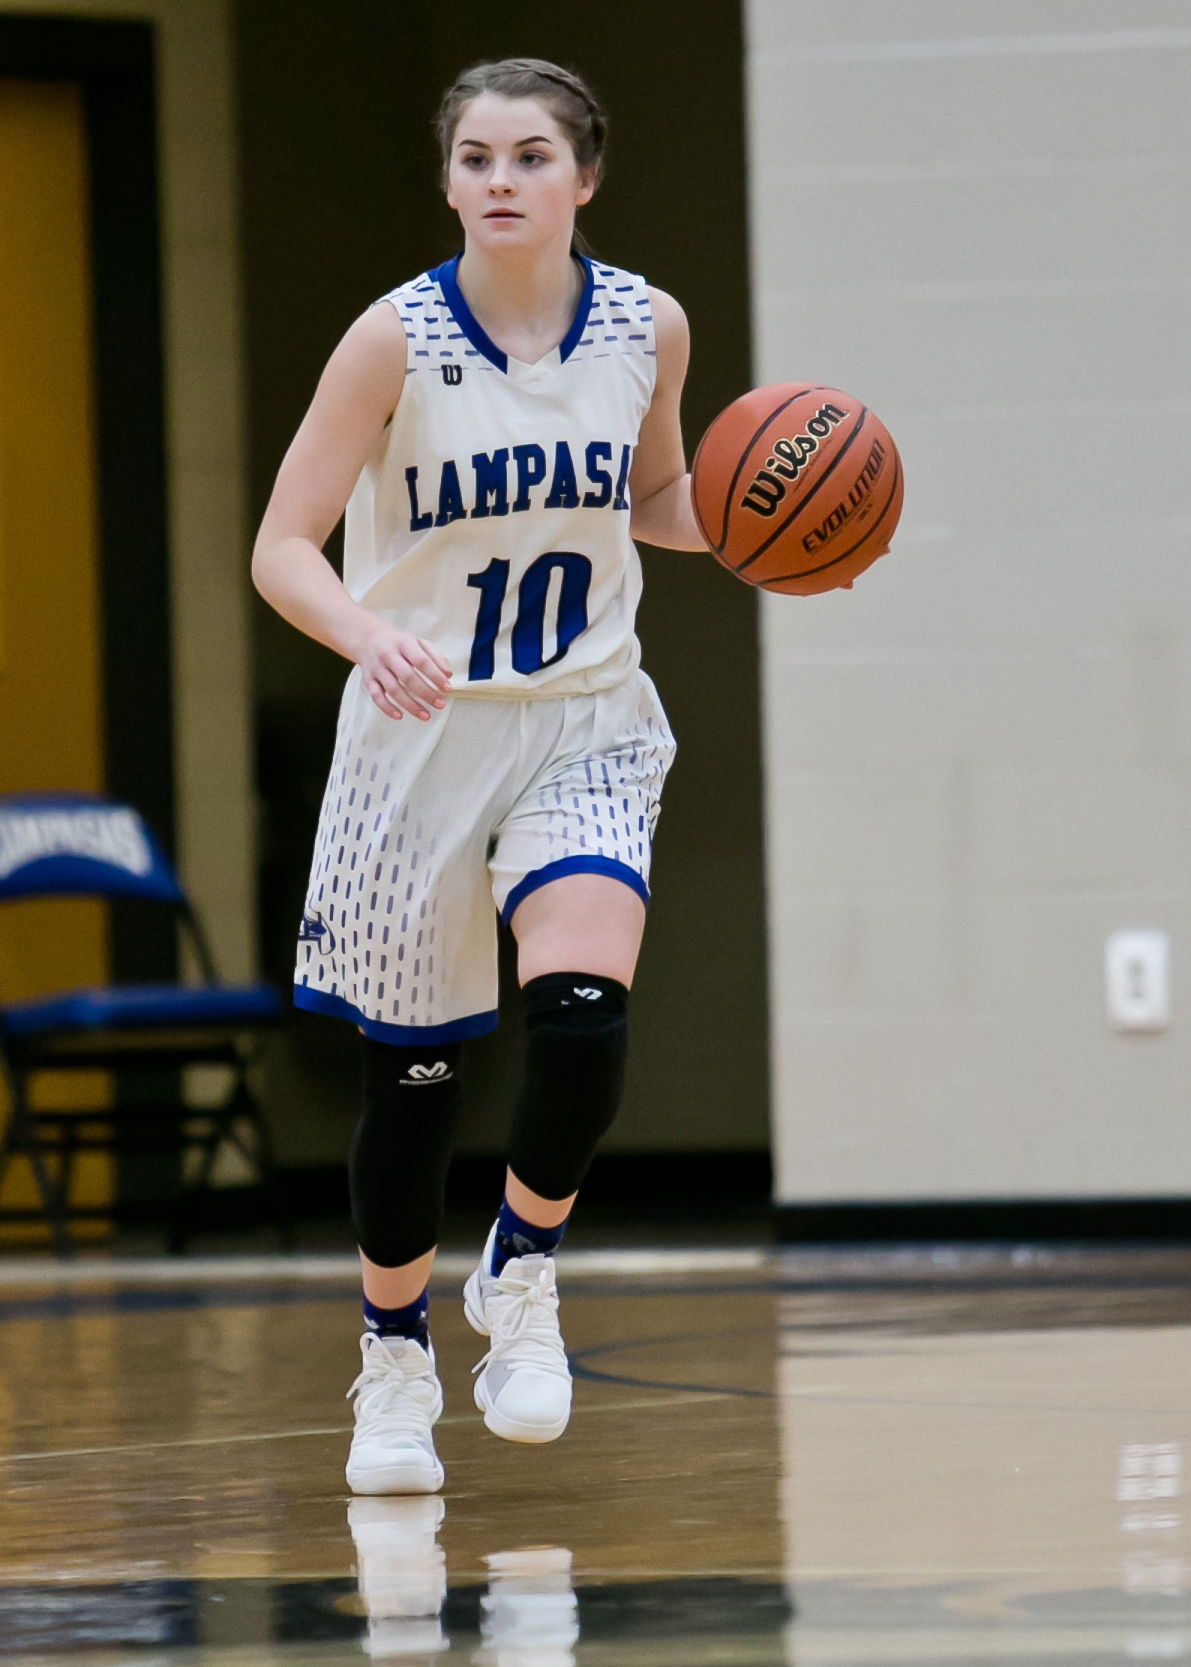 Jarrell at Lampasas girls Basketball